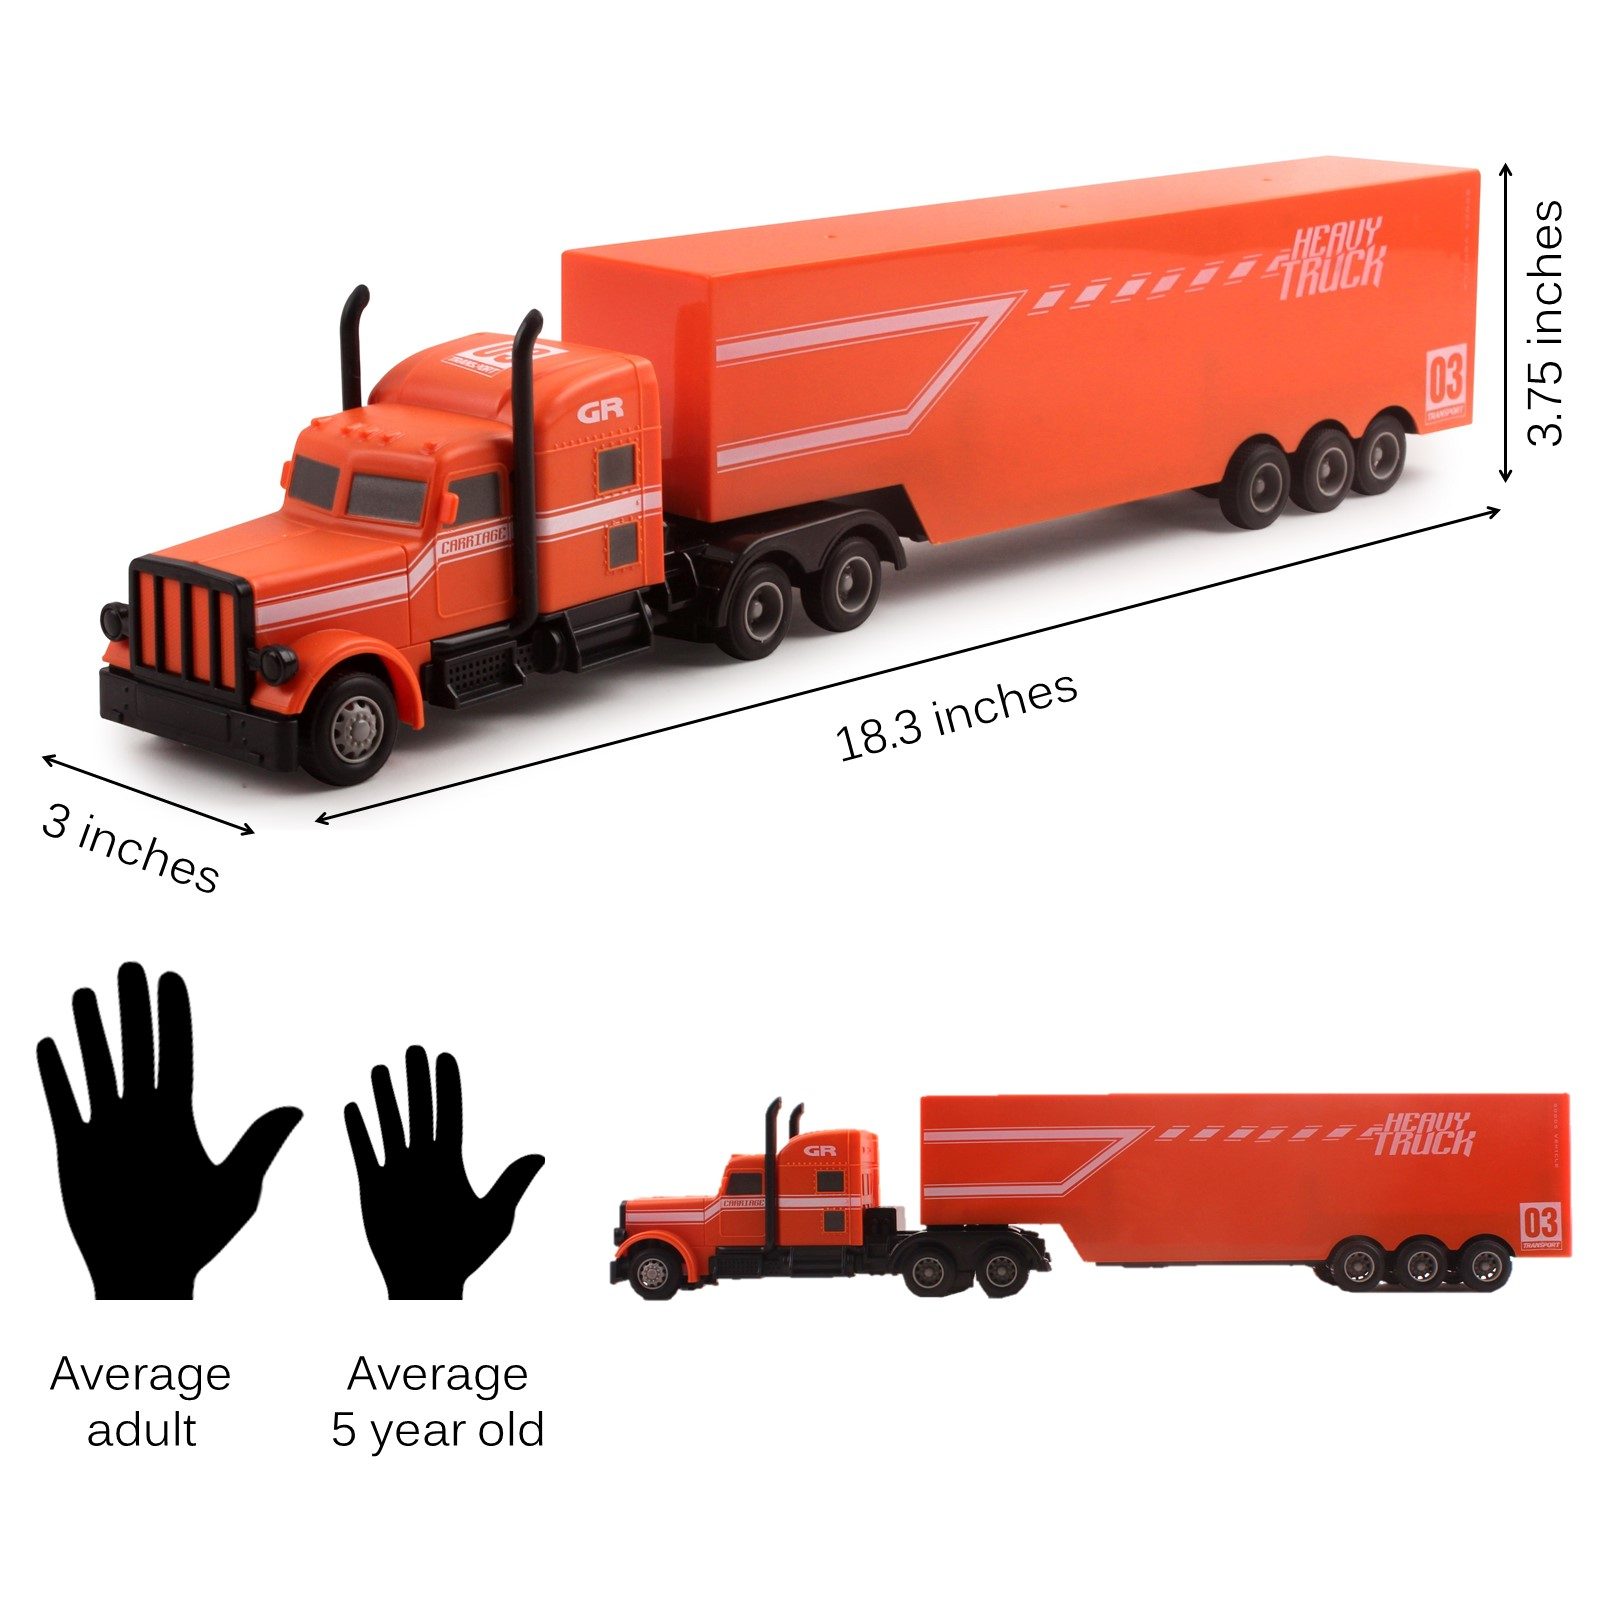 Vokodo Rc Semi Truck And Trailer 18 Inch 2 4ghz Fast Speed 1 16 Scale Electric Hauler Rechargeable Remote Control Kids Big Rig Toy Carrier Vehicle Cargo Transporter Great Gift For Children Boys Girls